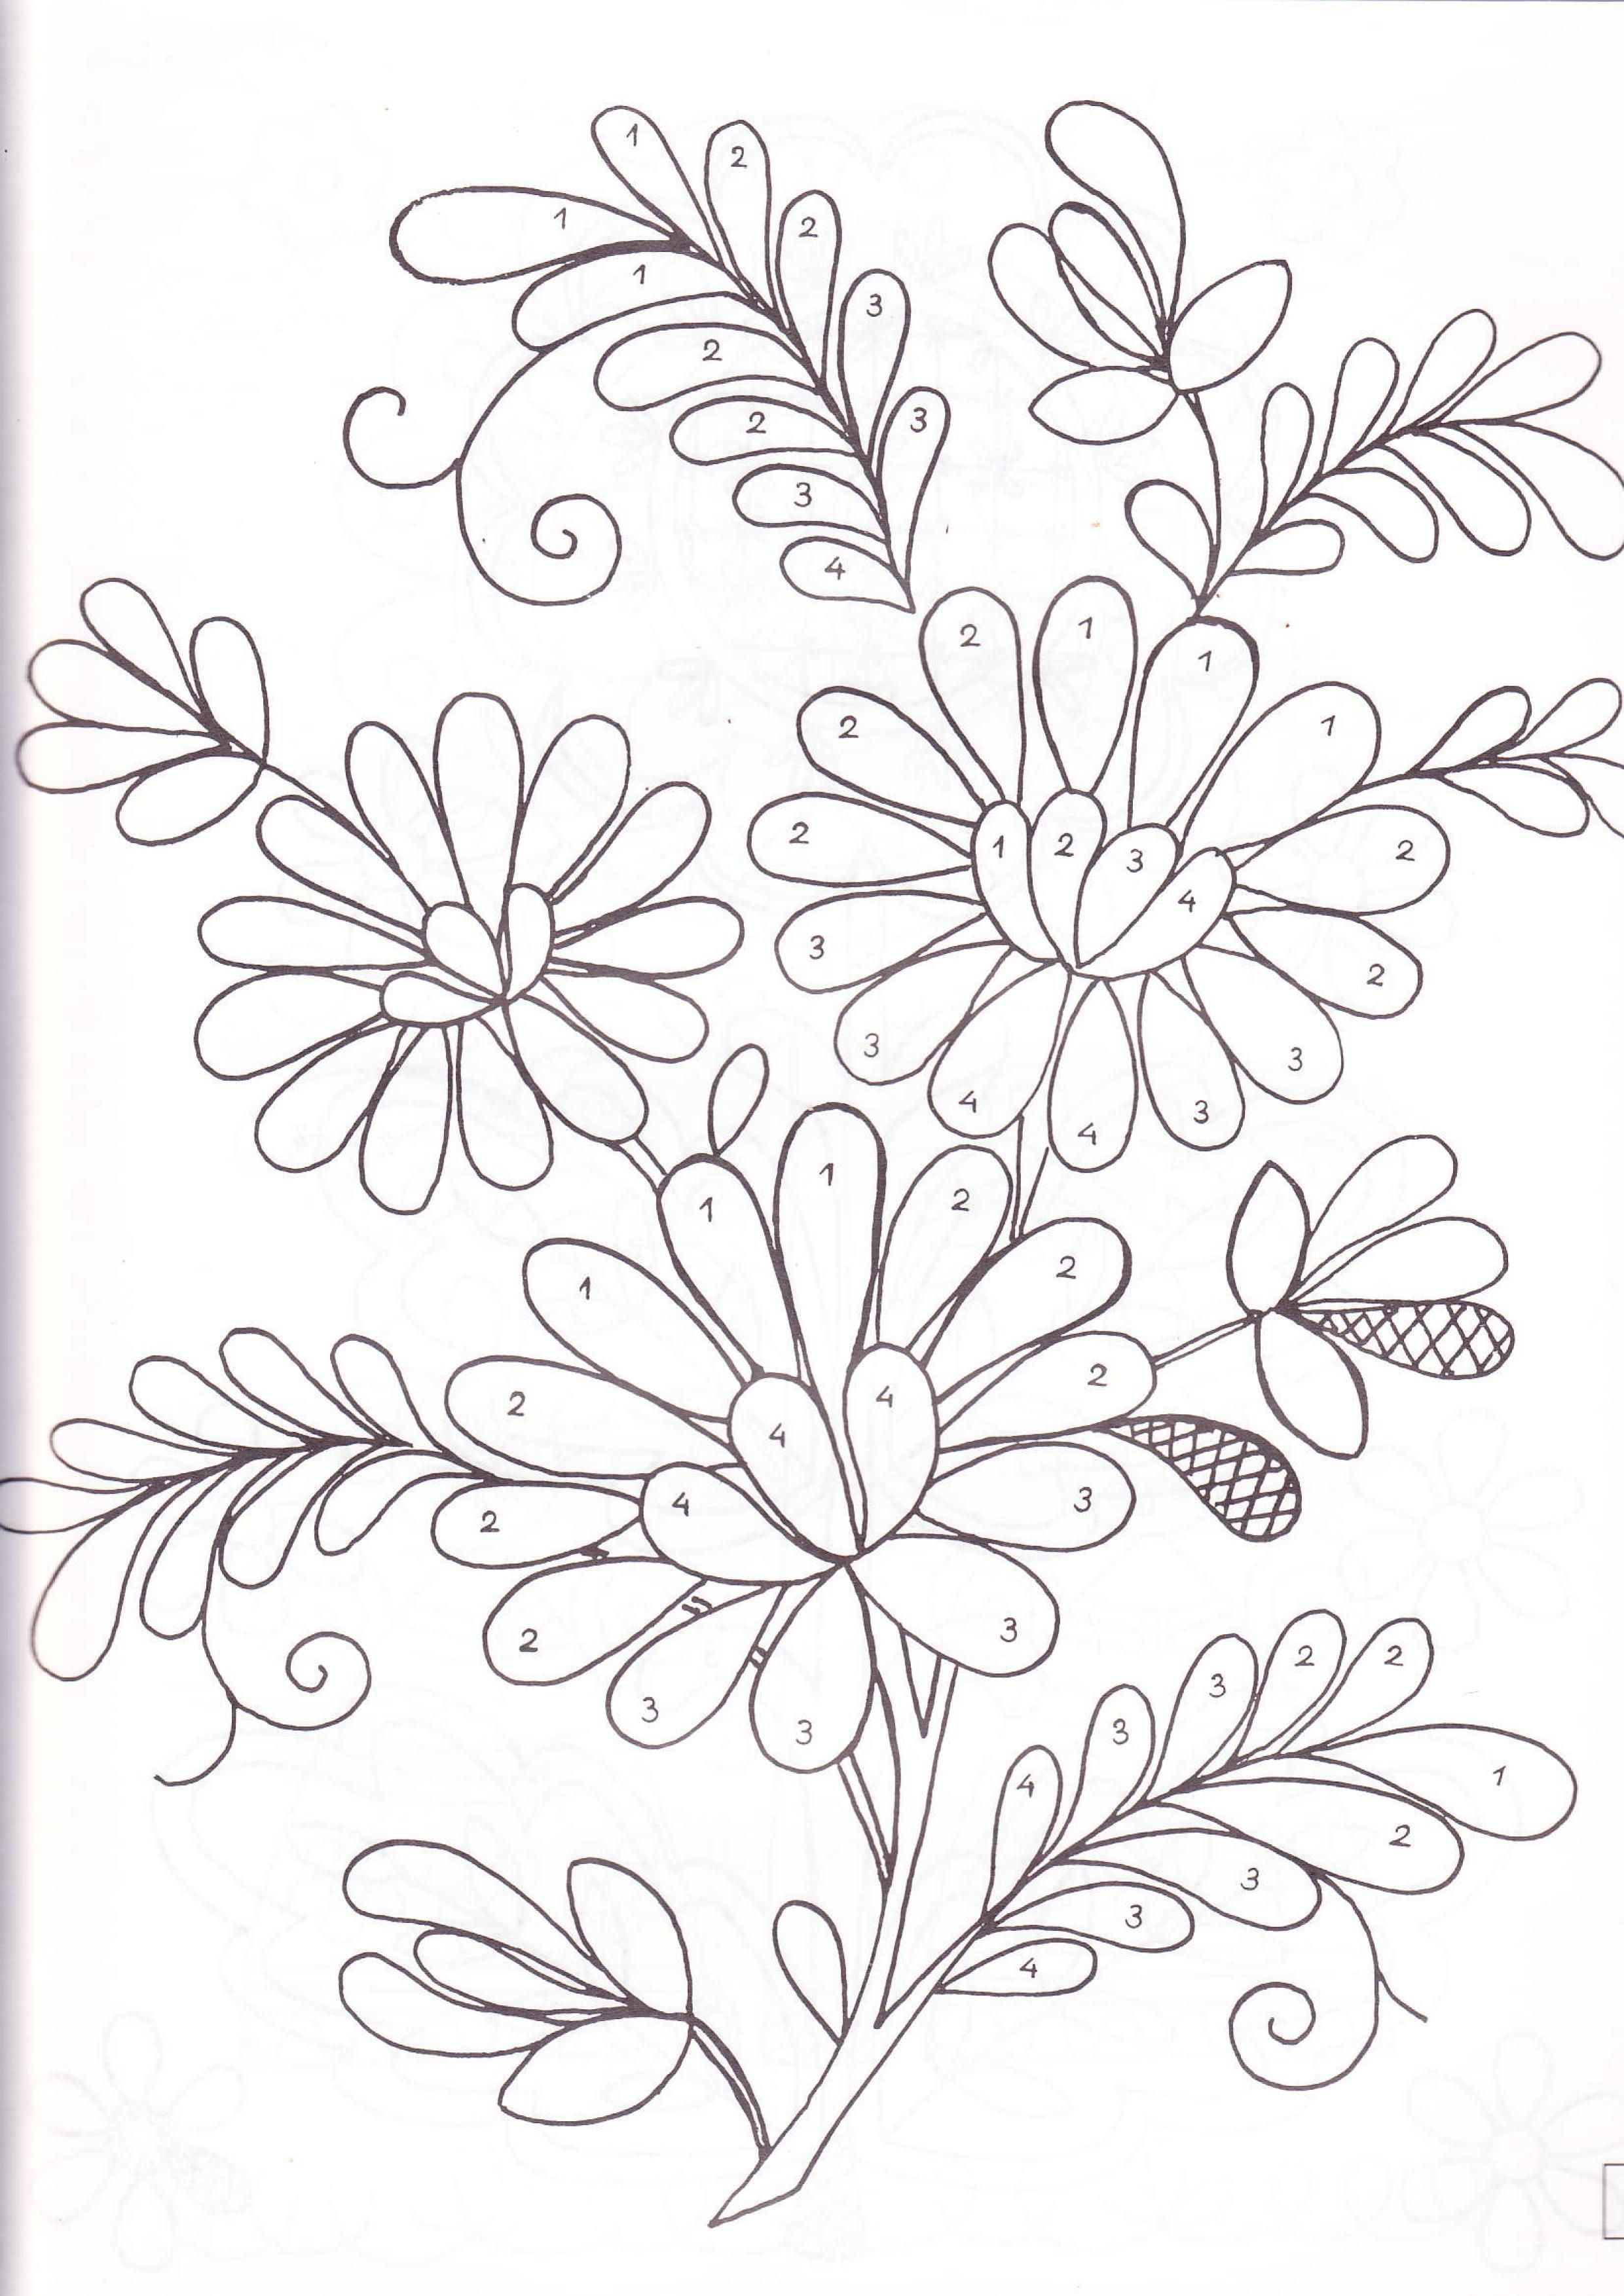 Pin by carina lingvall on pyssla pinterest embroidery patterns